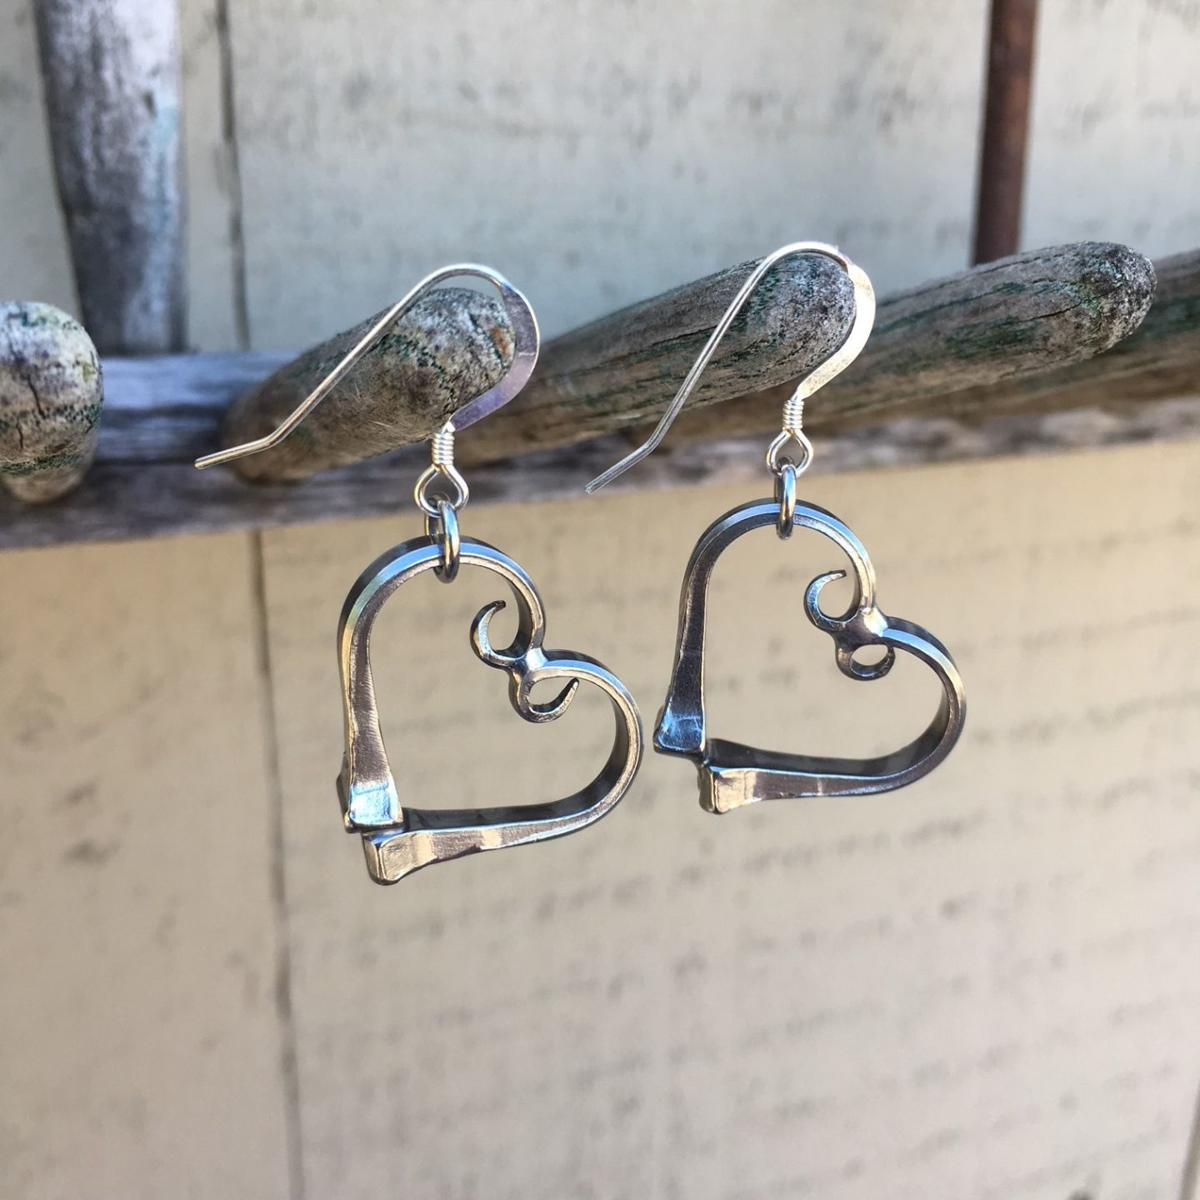 The Bent Nail heart earrings